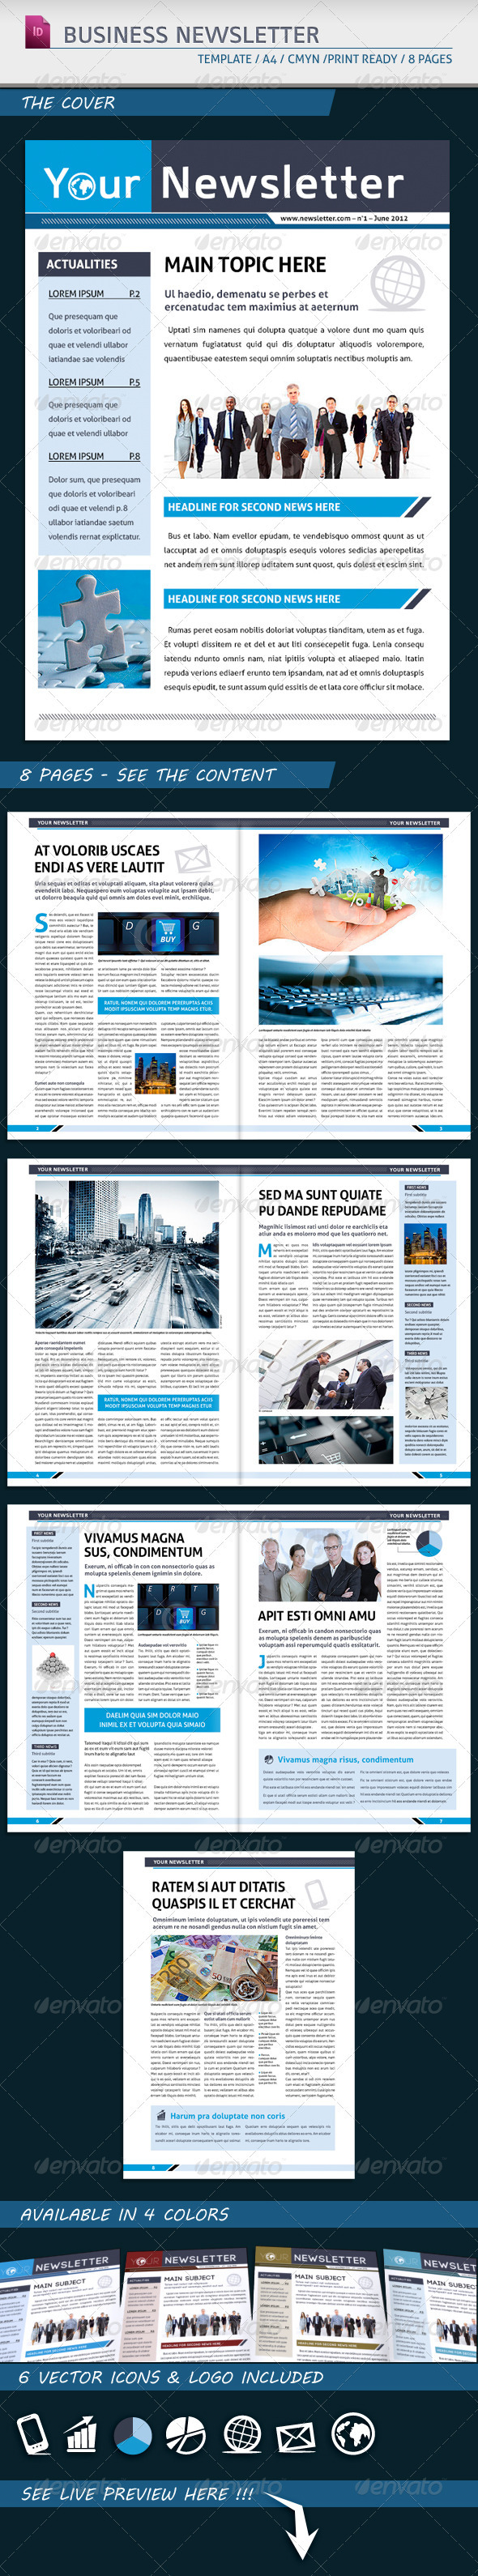 Modern Business Newsletter Template A4 - Newsletters Print Templates